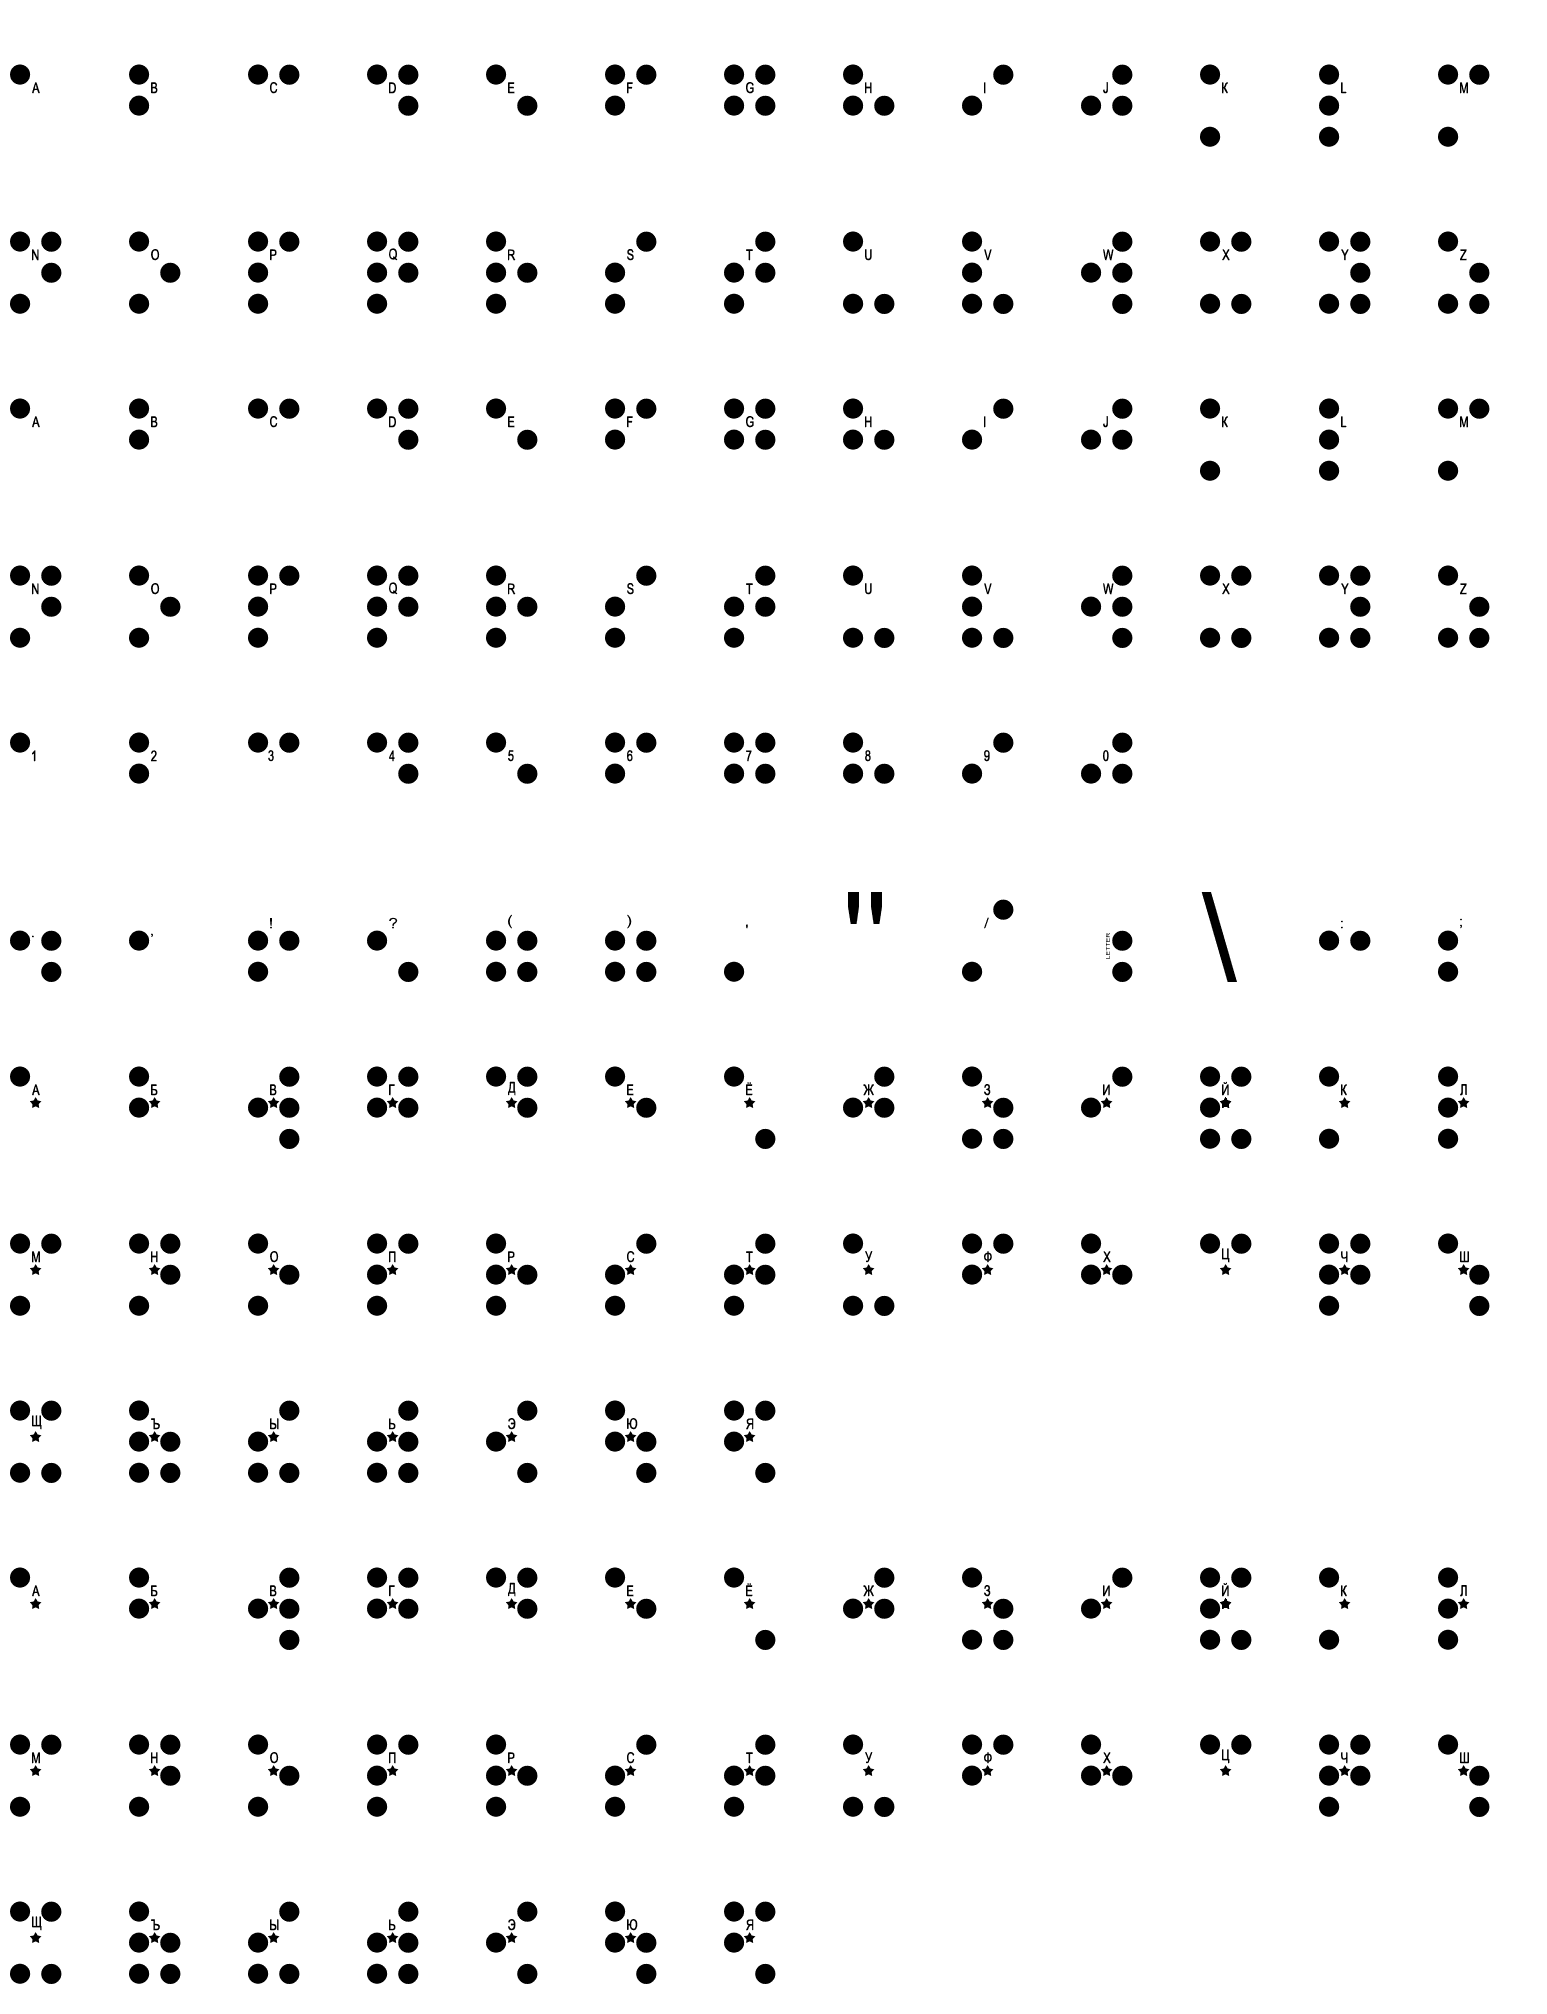 Шрифт Astakhov Braille alphabet-2